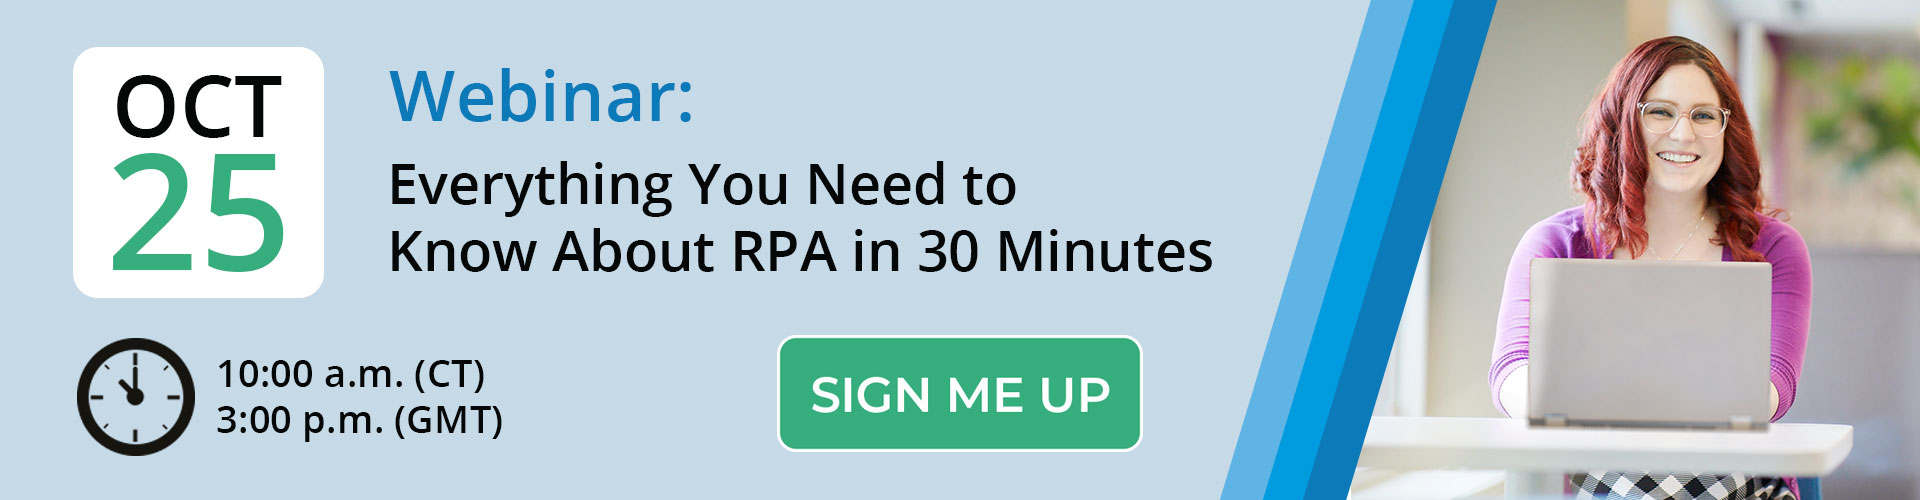 Register for our Robotic Process Automation Webinar!